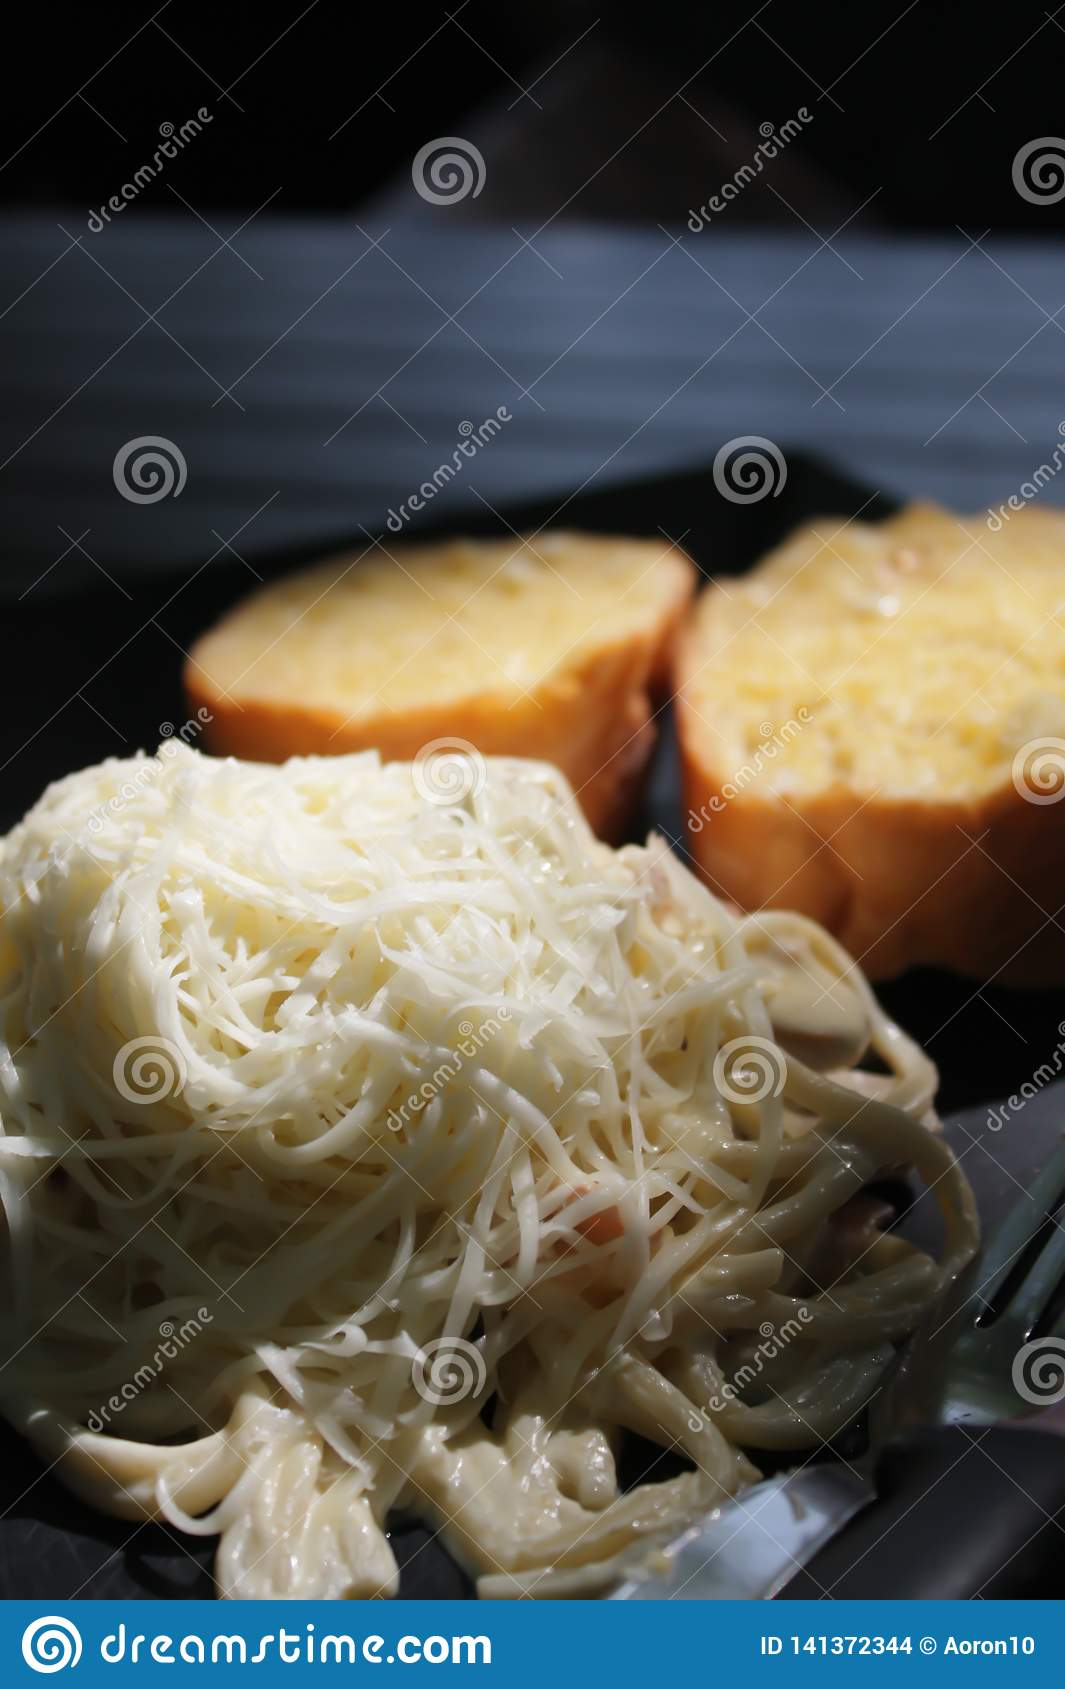 Spaghetti with white sauce, ham and mushrooms topped with cheese and garlic bread served on a black plate.